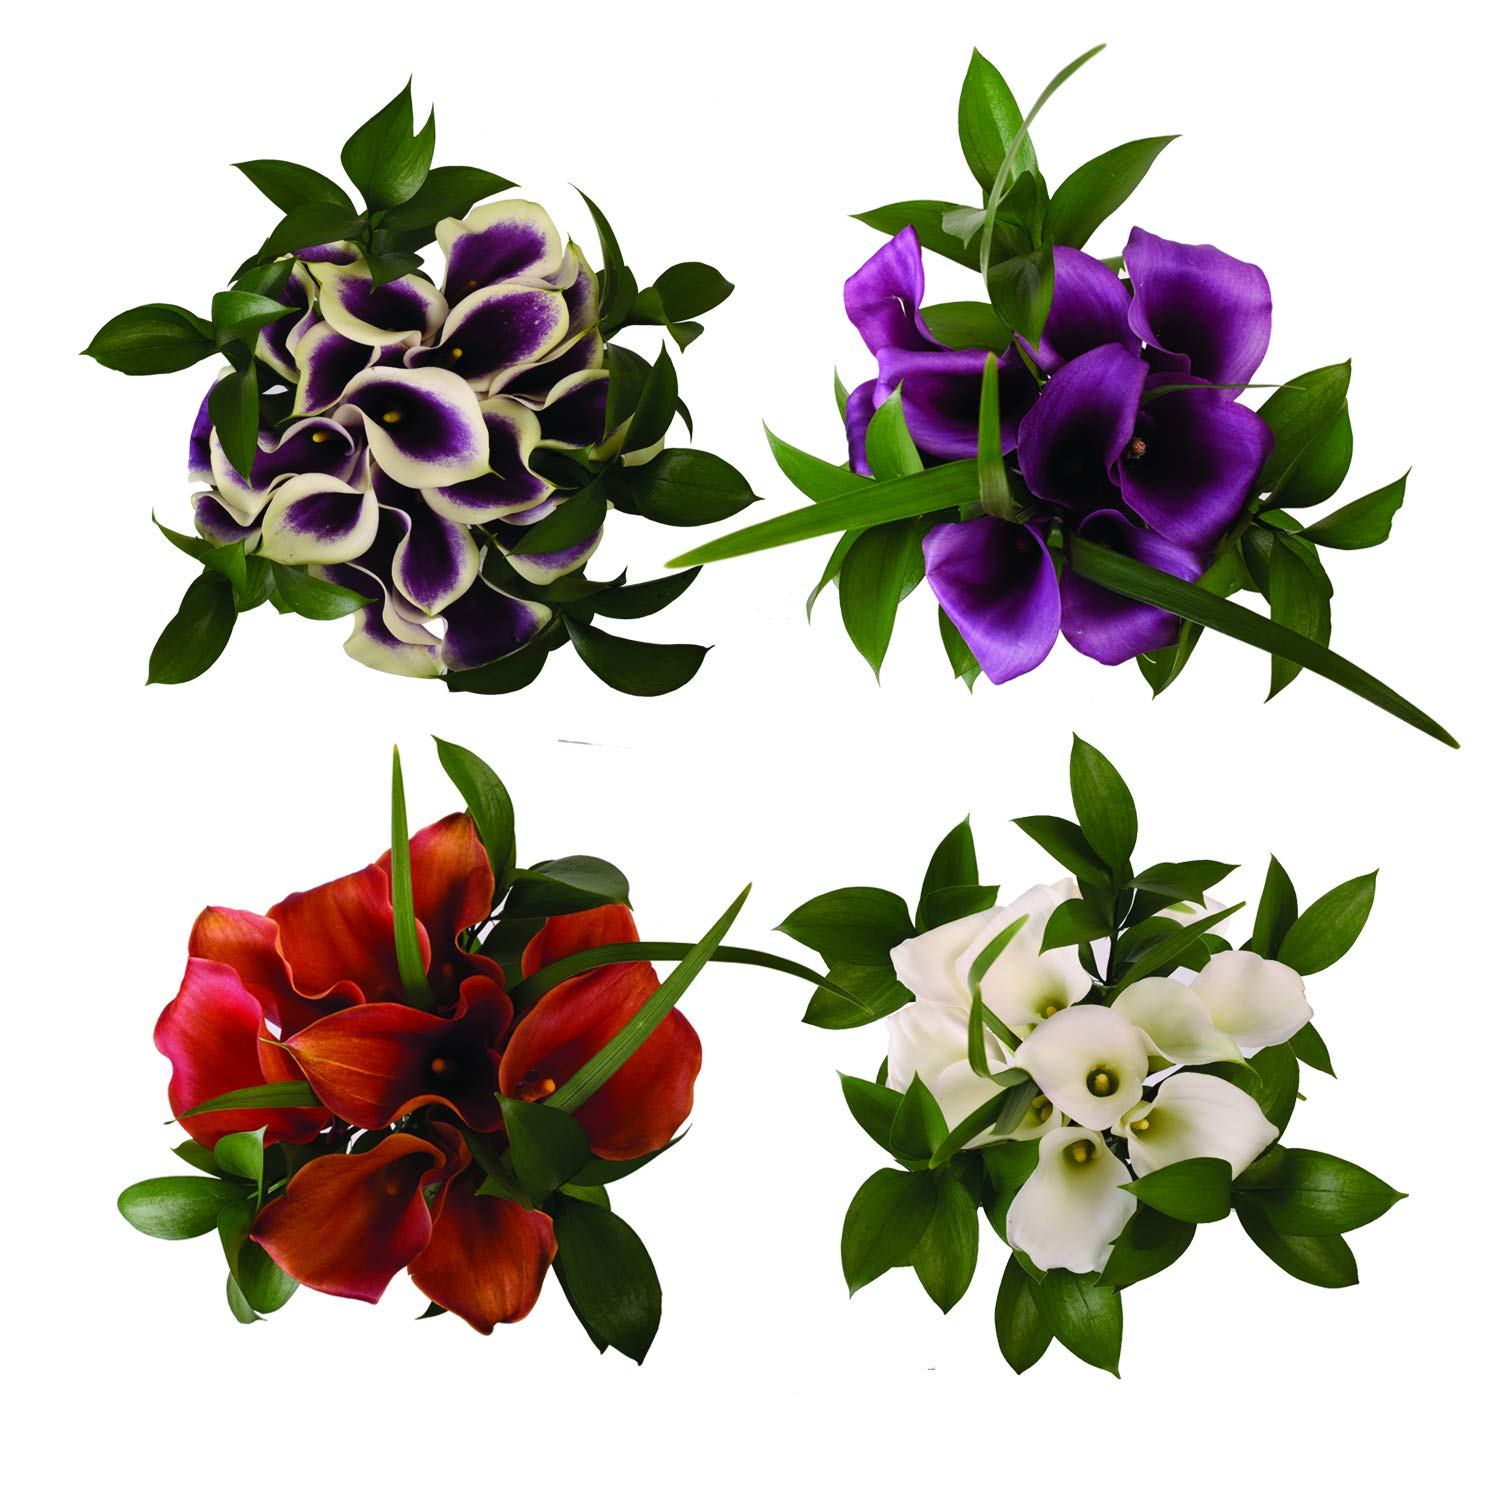 Mini Elegance Purple Passion Assortment - 8 Pack by Bloomingmore